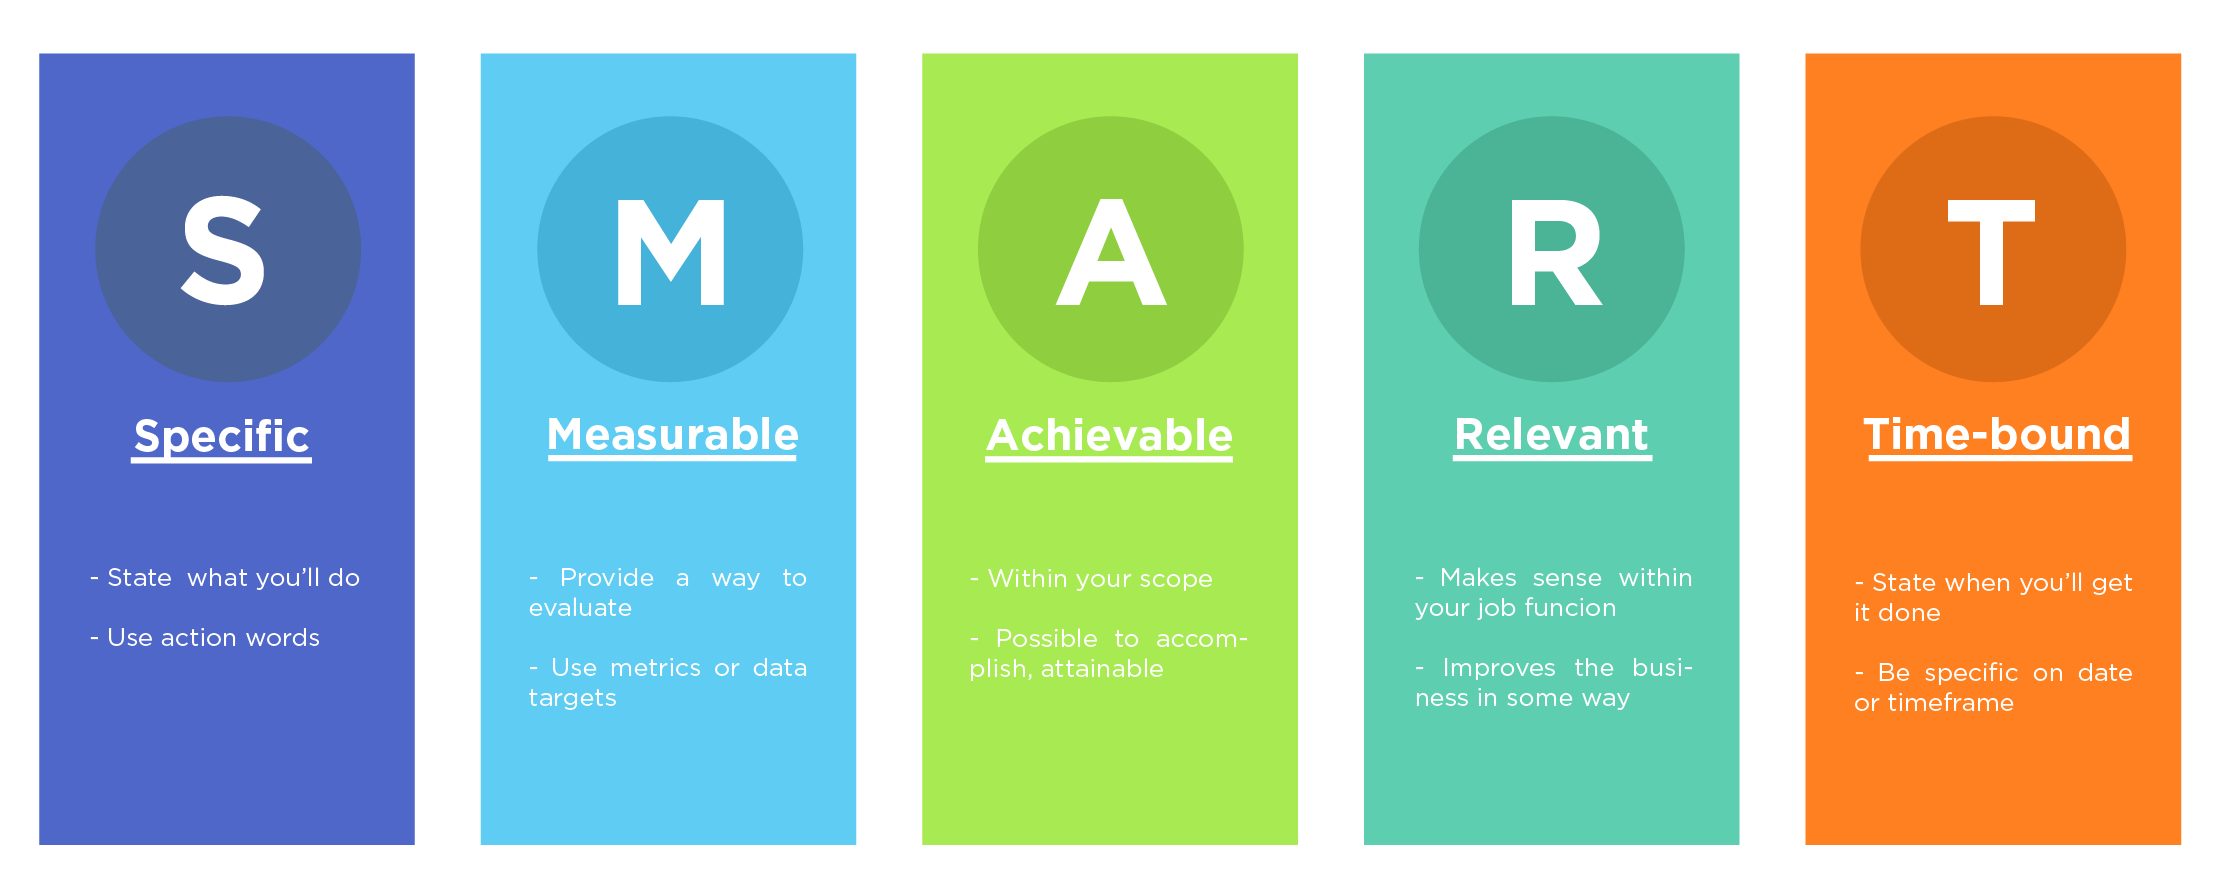 Achieving Goal With Smart